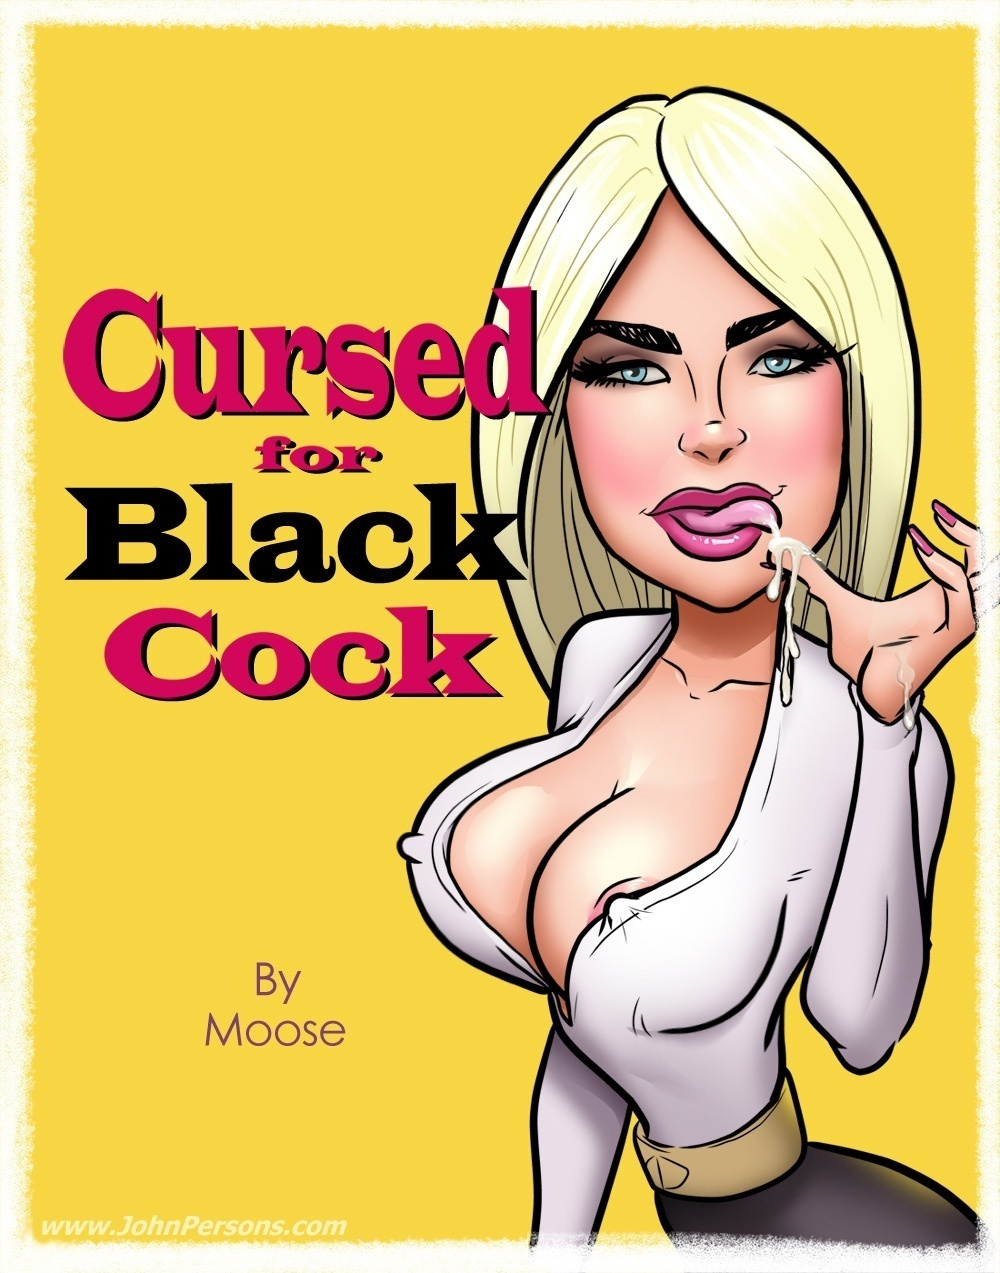 JohnPersons – Cursed for Black Cock